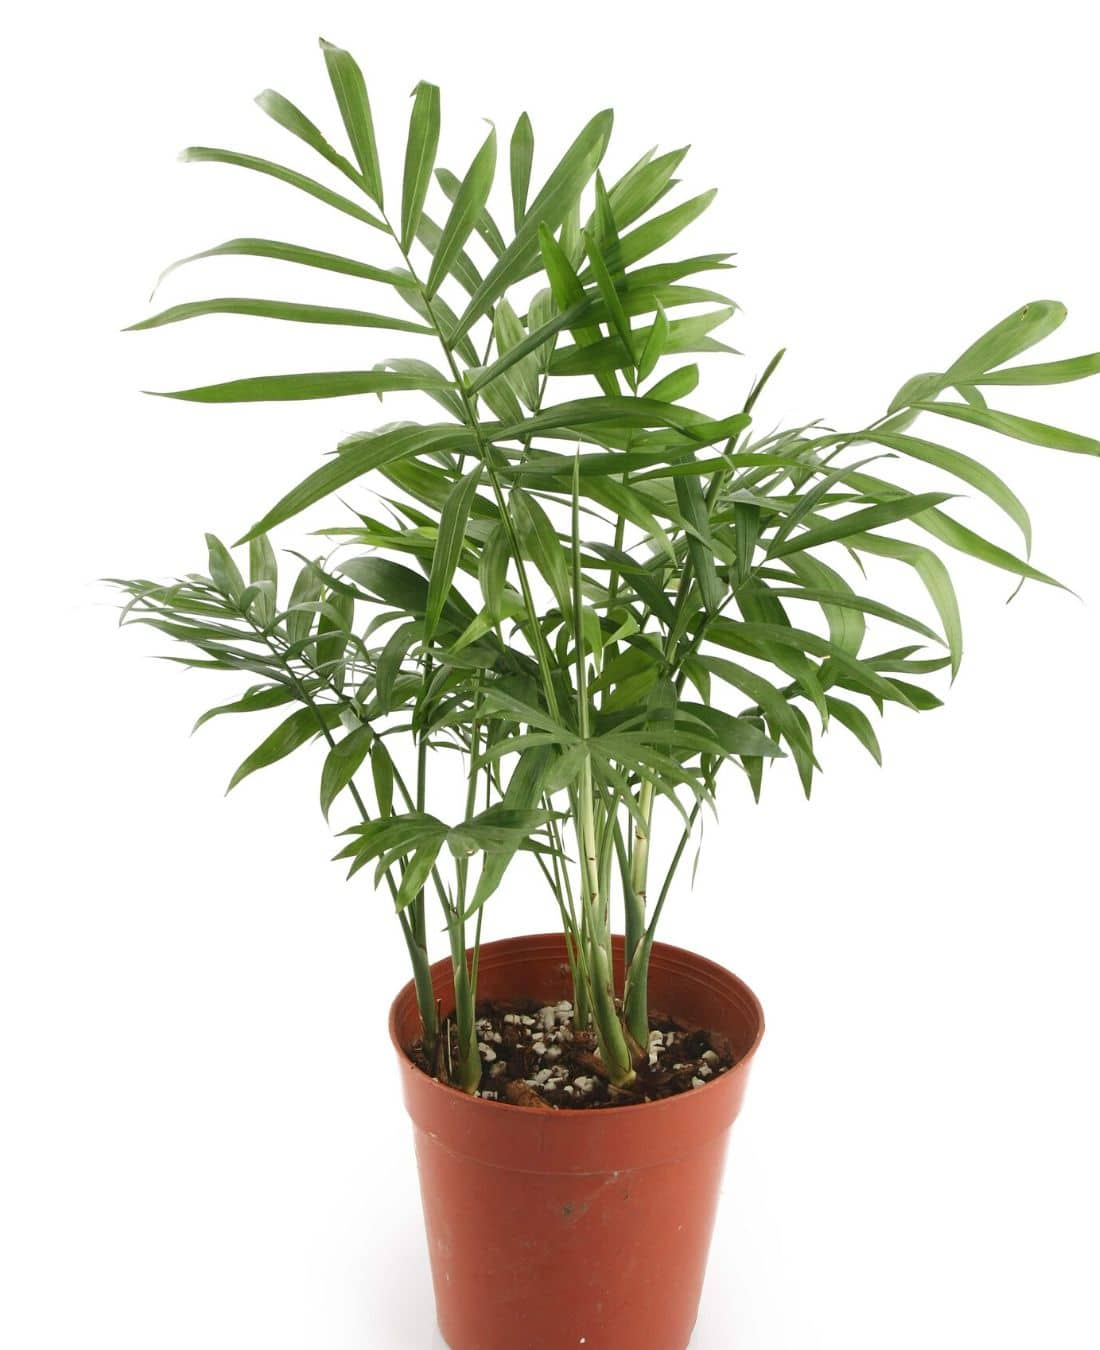 Office Desk Plants | Office Plants | Benefits Of Plants In The Office | ImpeccaBuild 2